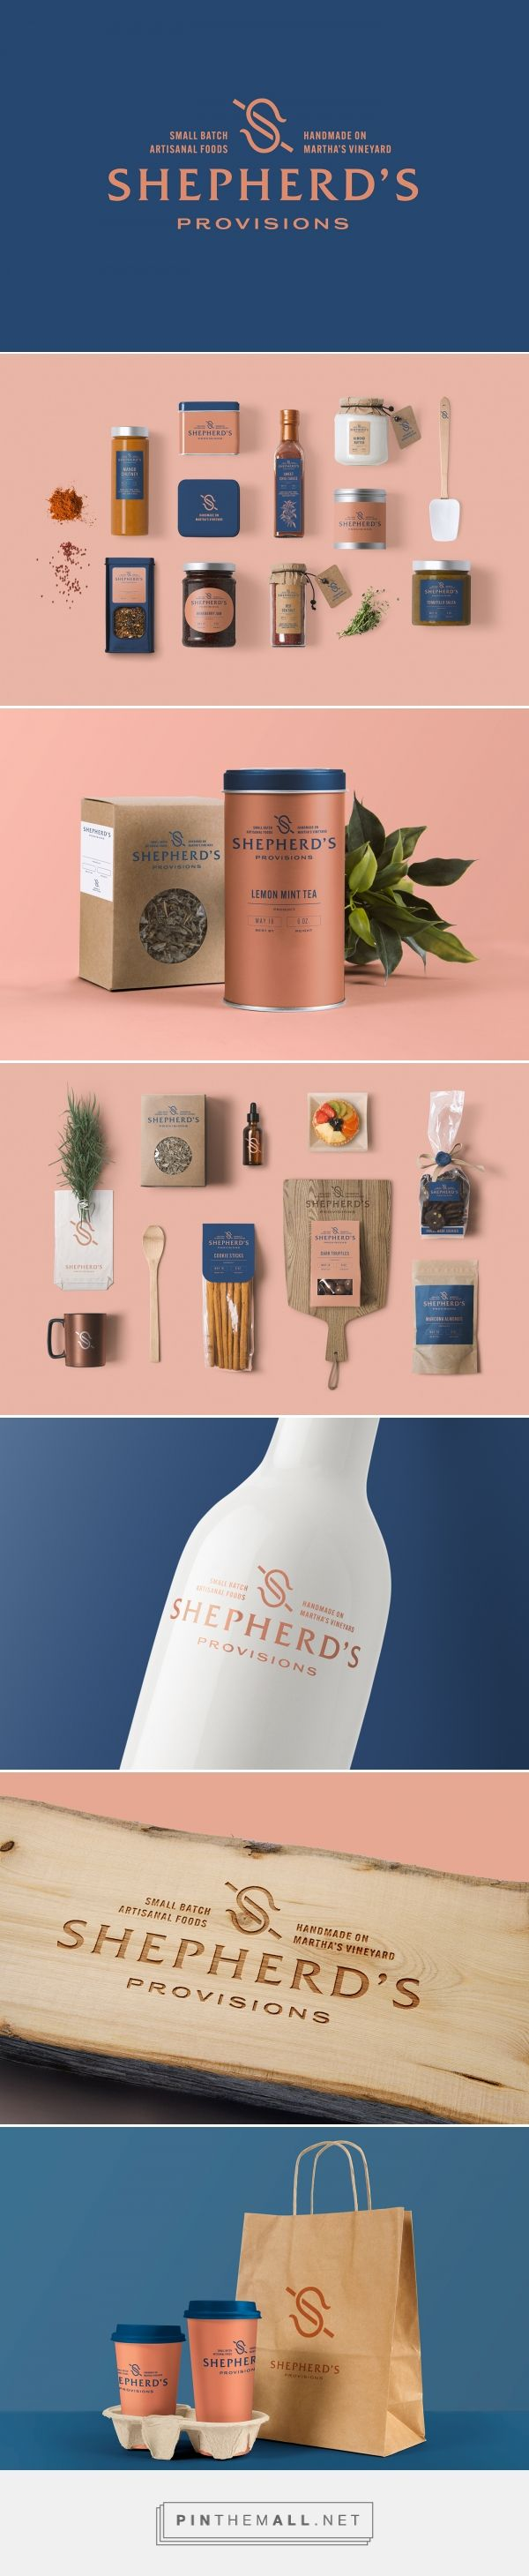 Shepherd's Provisions Branding and Packaging by Bluerock Design Co | Fivestar Branding Agency – Design and Branding Agency & Curated Inspiration Gallery